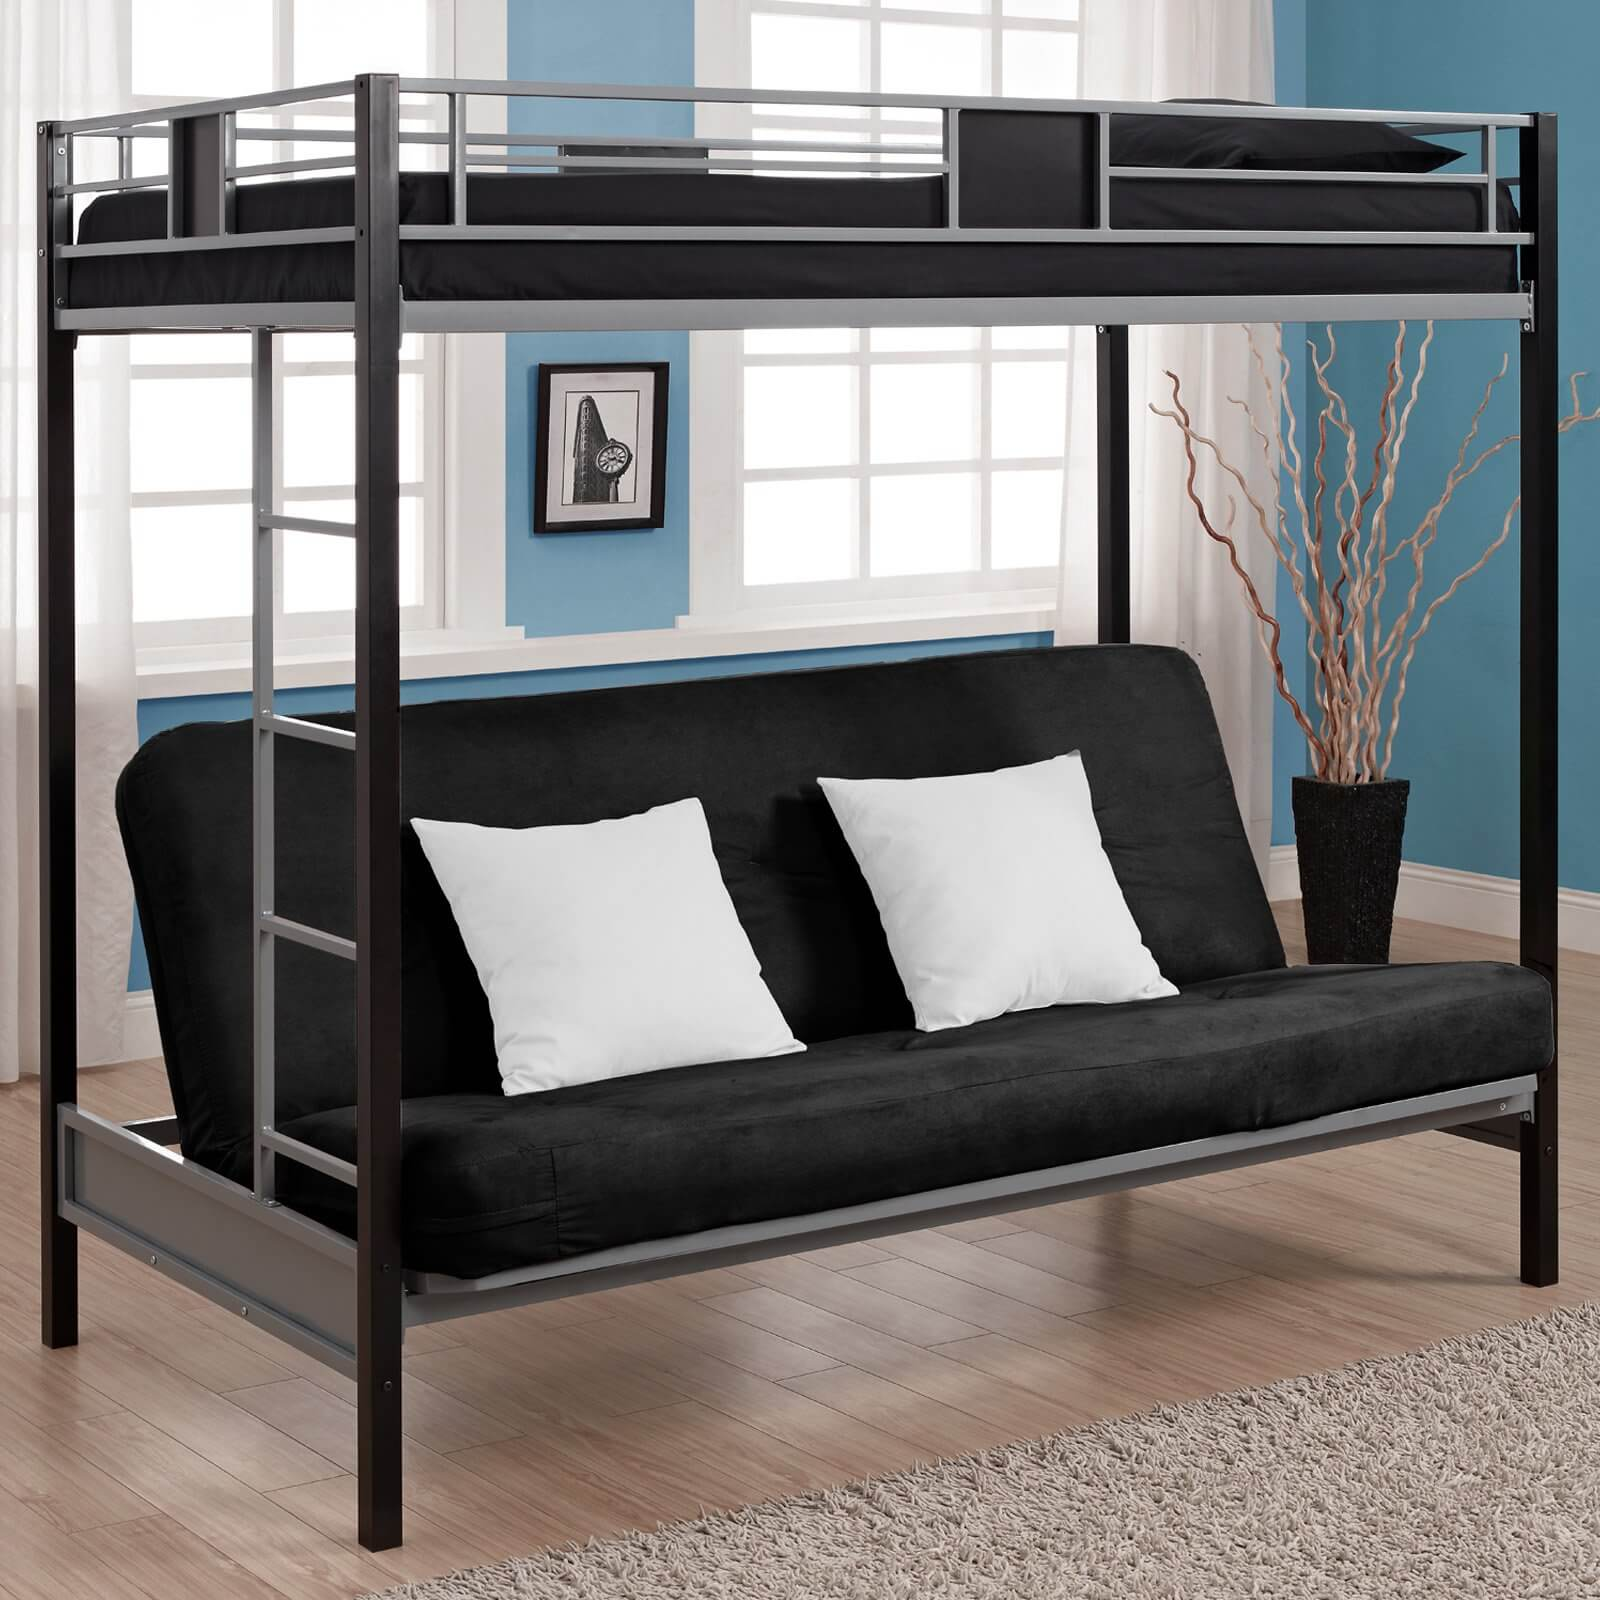 These bunk beds combine a standard upper level bed with a lower level futon, for added versatility. Not only can they sleep two people comfortably, but the futon acts as a comfortable sofa during waking hours. These are great for bedrooms with televisions or for simply hanging out.